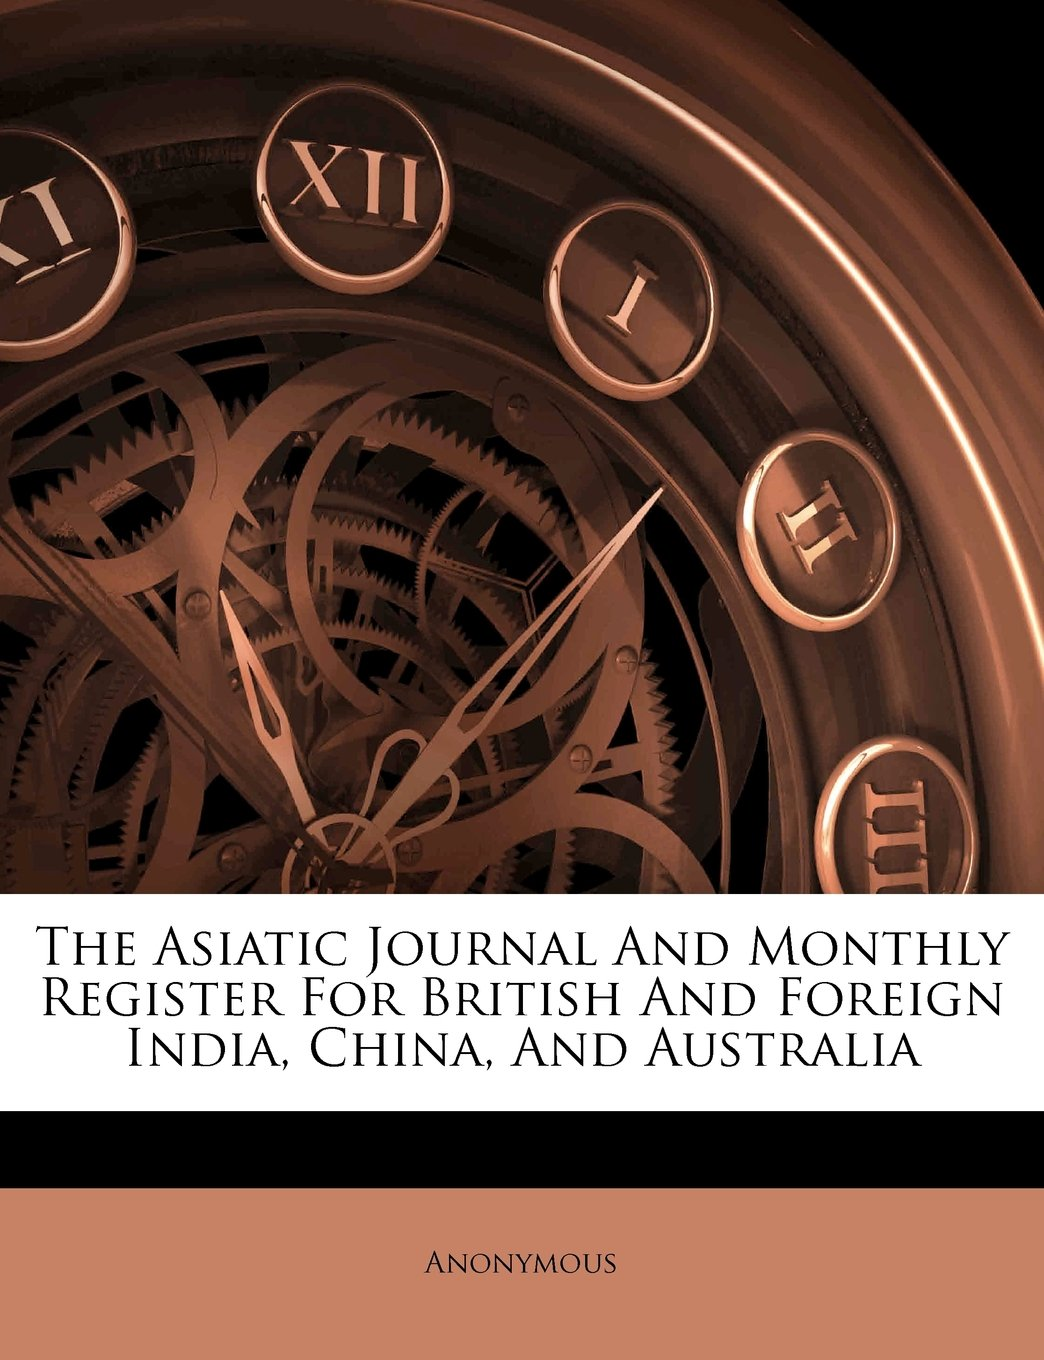 The Asiatic Journal And Monthly Register For British And Foreign India, China, And Australia PDF